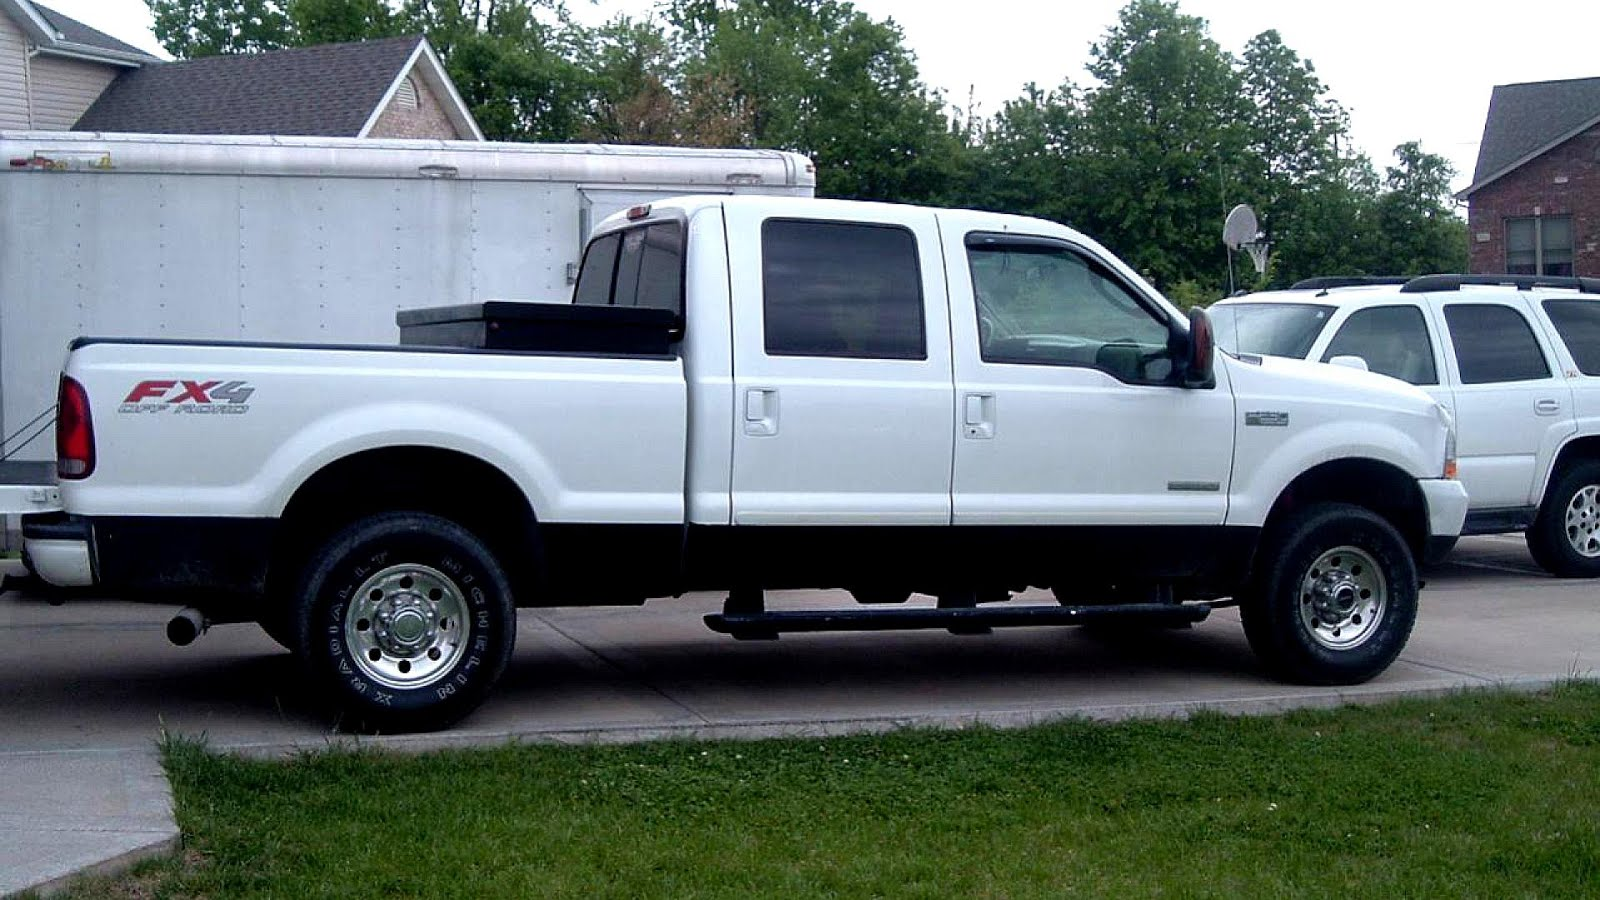 Craigslist Seattle Cars And Trucks By Owner >> Craigslist Seattle Cars By Owner Auto Car Update